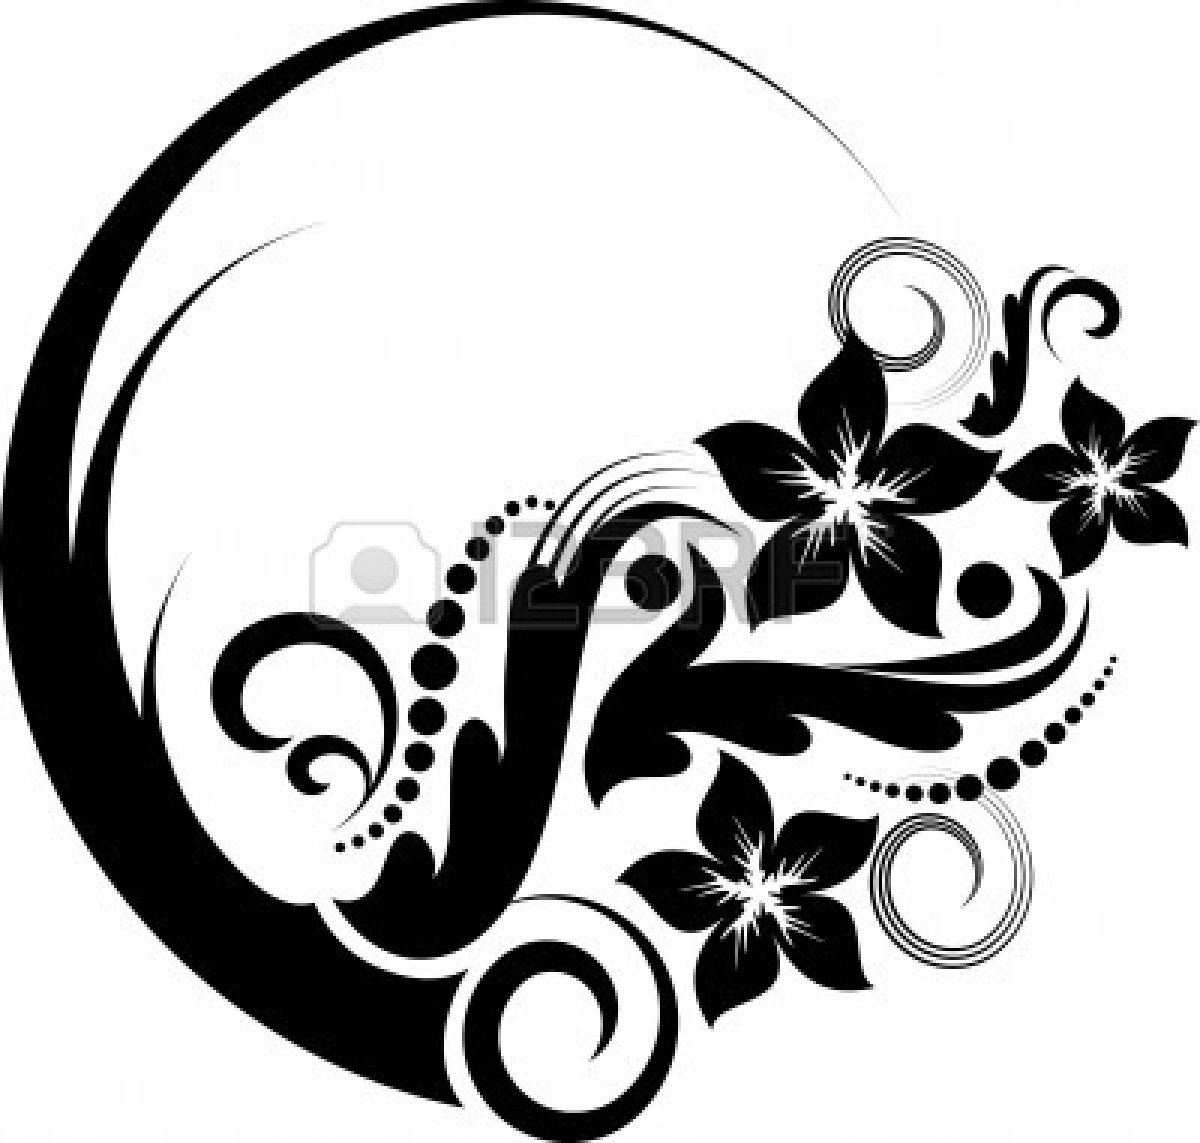 Baroque Silhouette At Getdrawings Com Free For Personal Use